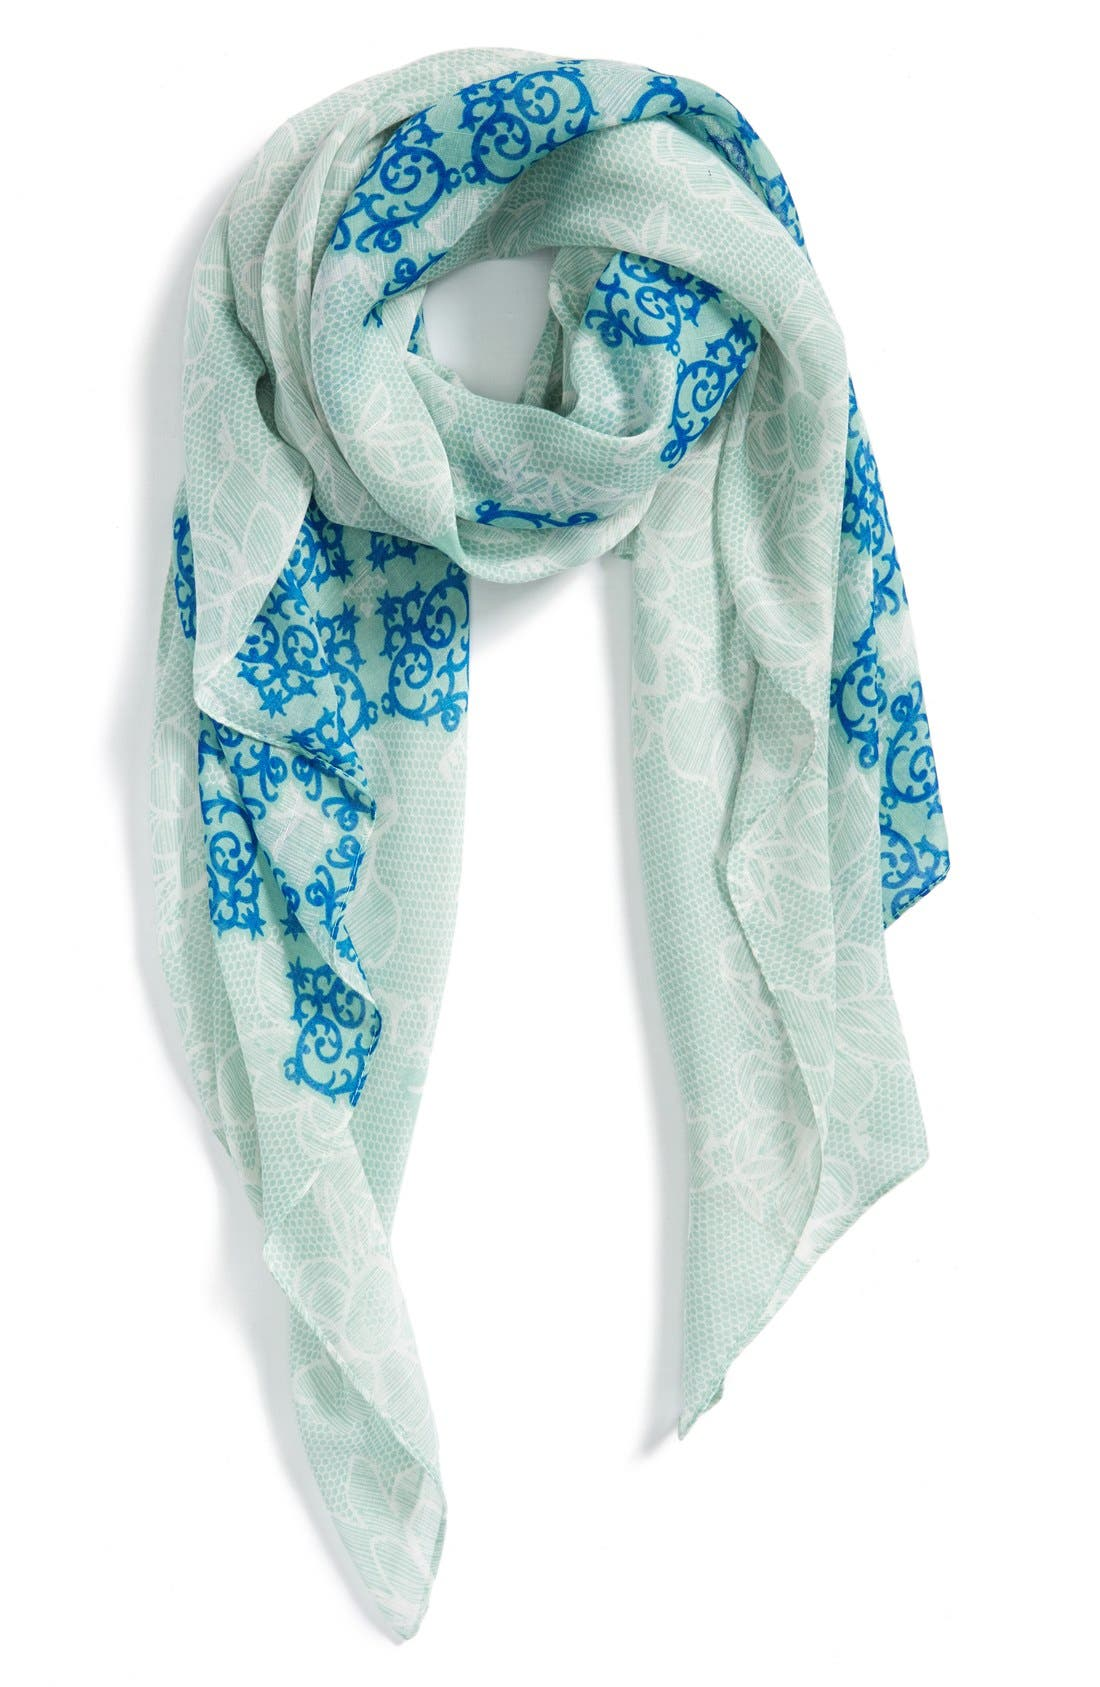 Main Image - Evelyn K 'Lacy Floral Number' Print Scarf